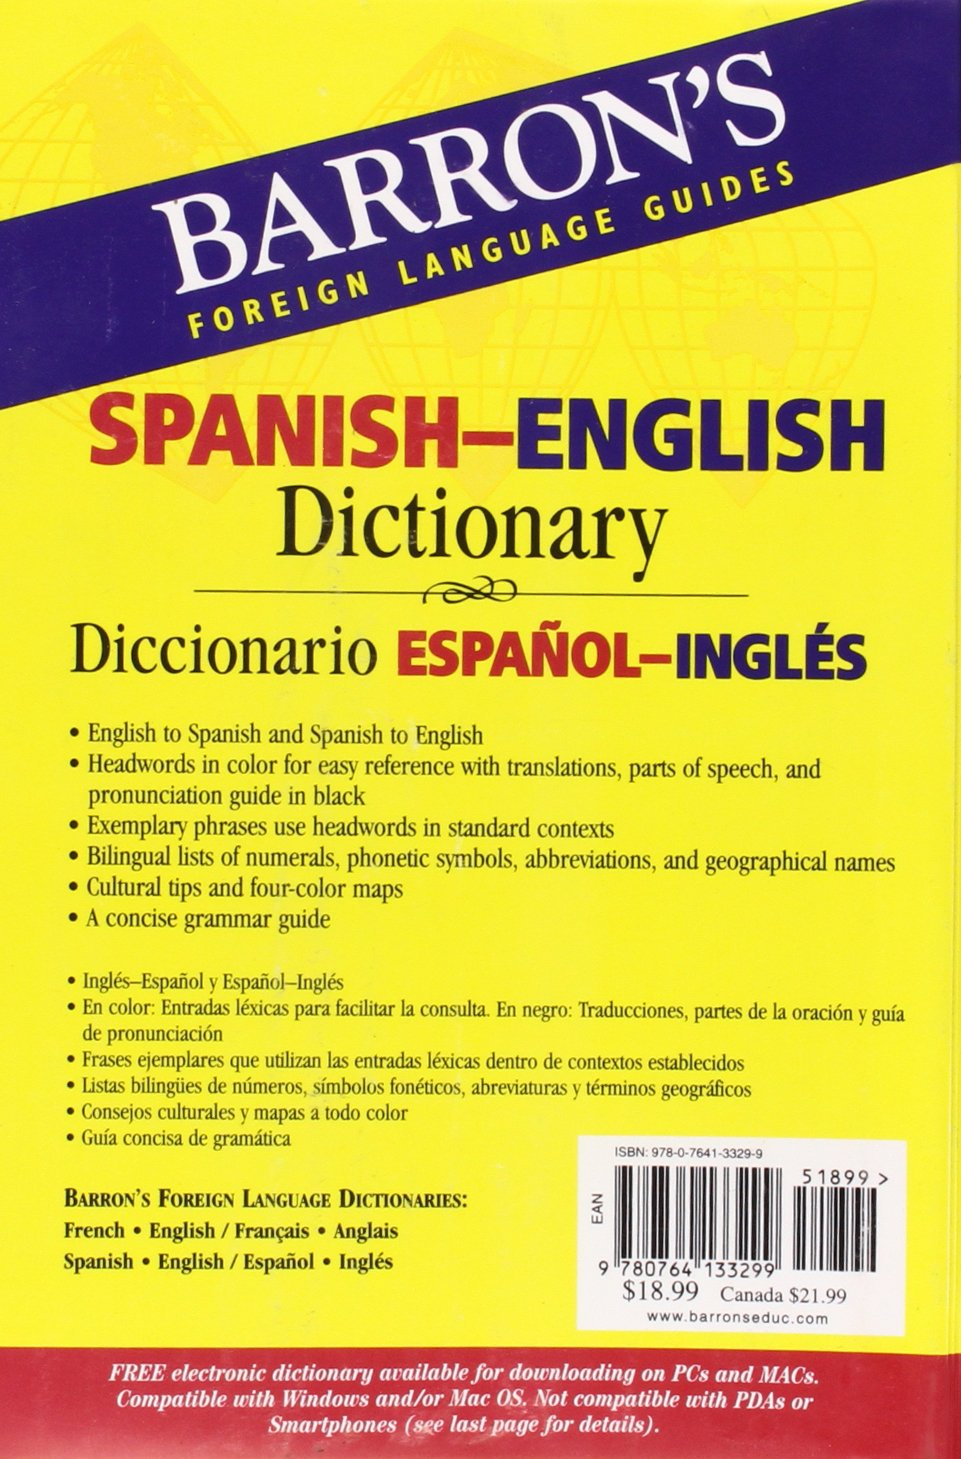 Barron's Foreign Language Guides Spanish-English Dictionary (Barron's  Bilingual Dictionaries): Margaret Cop: 9780764133299: Amazon.com: Books